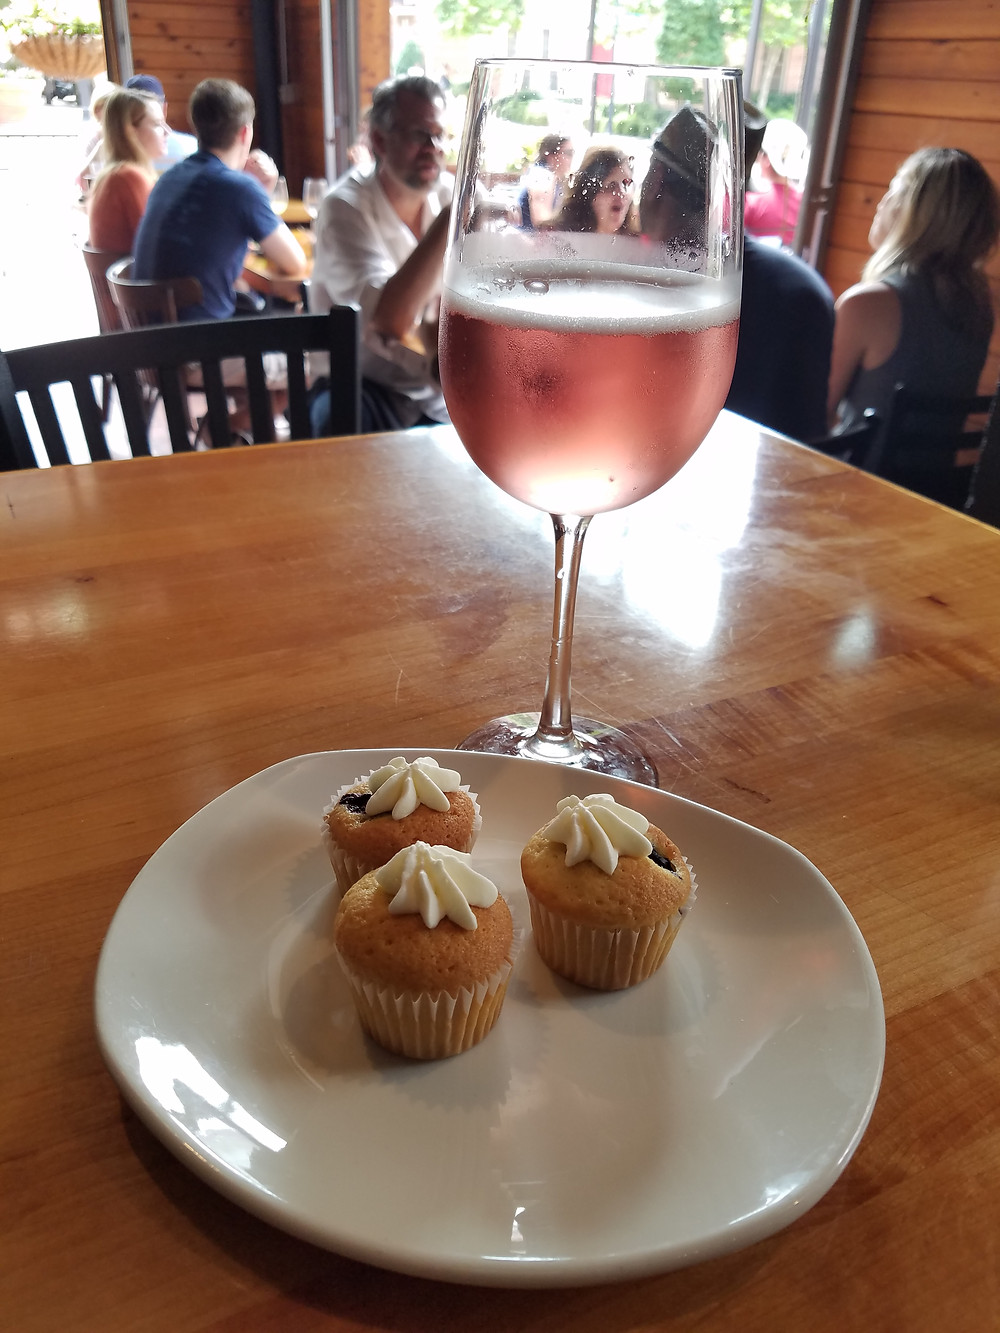 State & Allen offers complimentary mini muffins